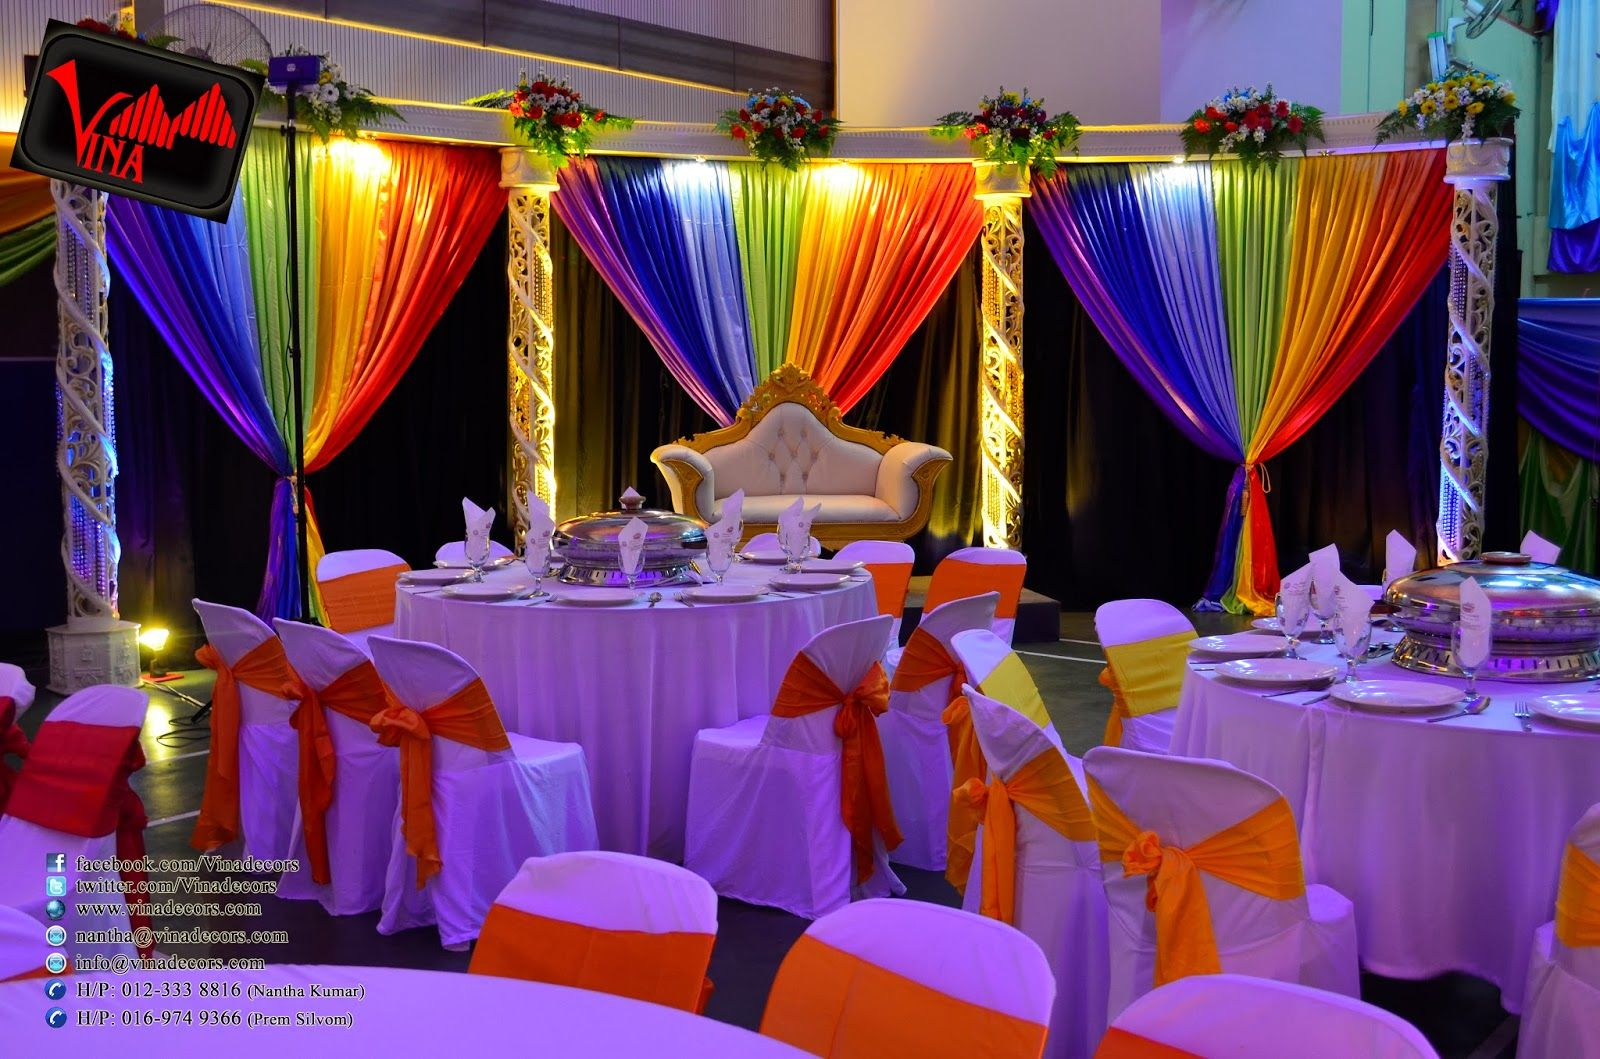 Rainbow Wedding Decorations This Will Be The Reception Hall